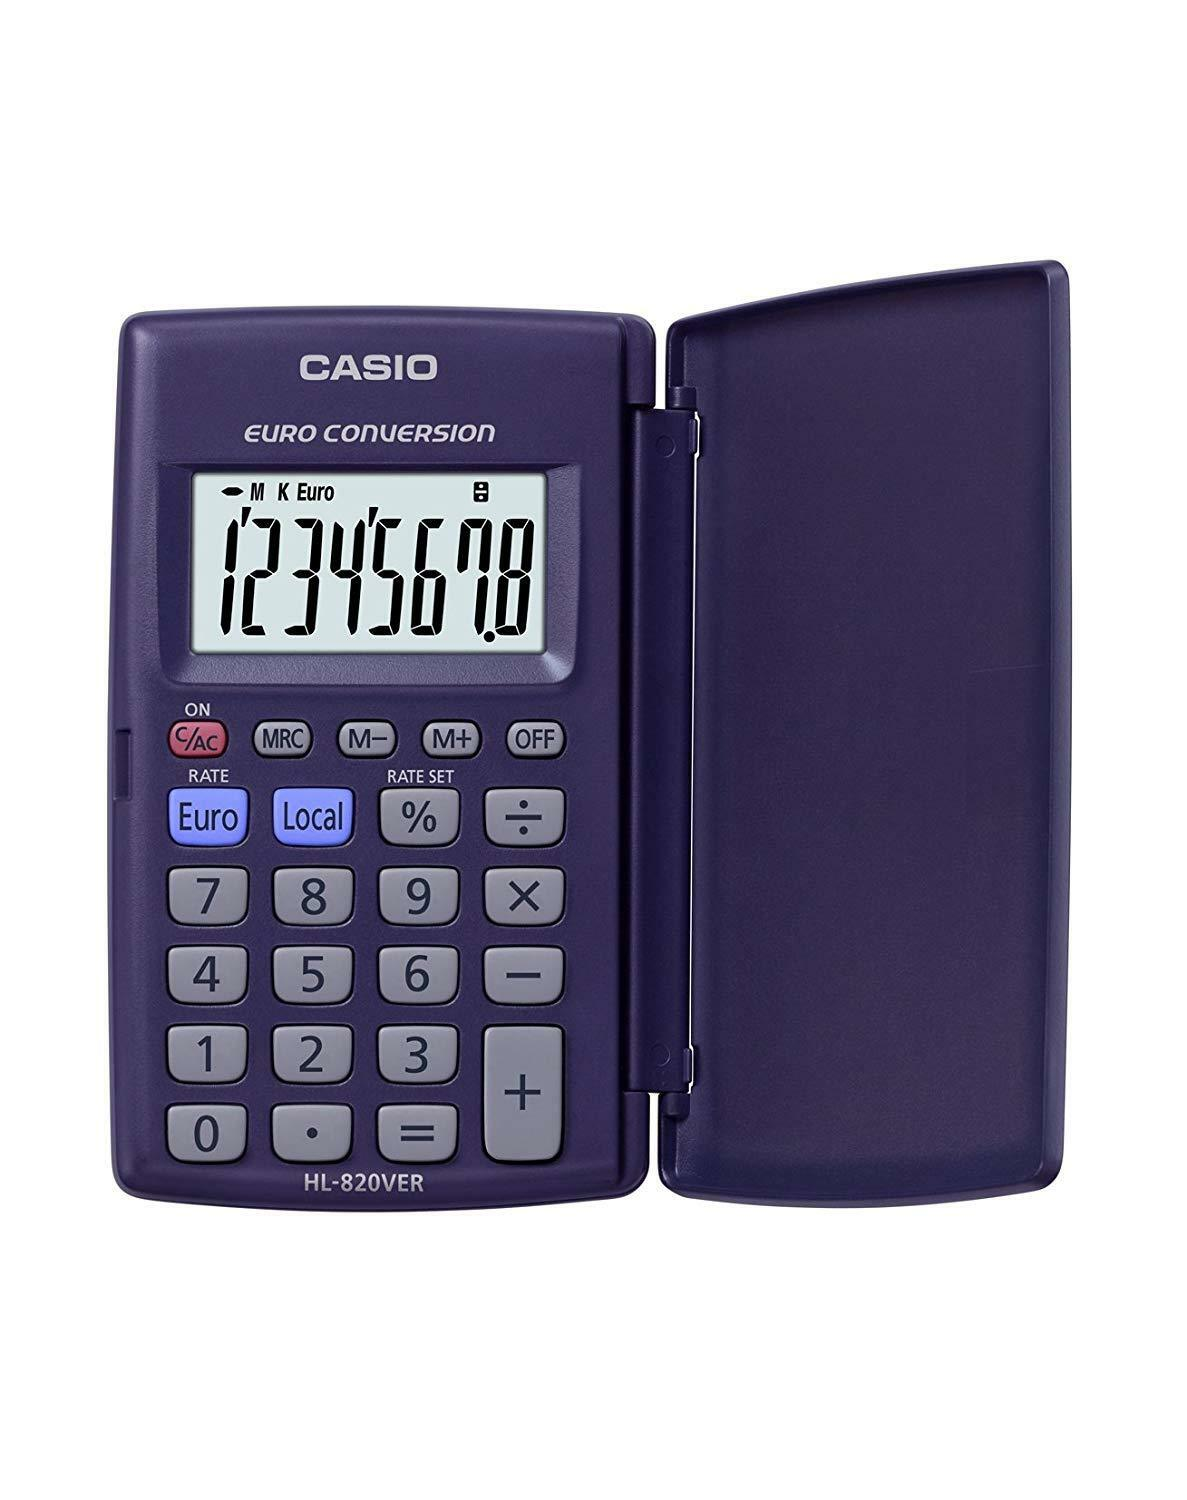 NEW Casio HL-820VER Pocket Calculator Euro € Conversion with Large Display